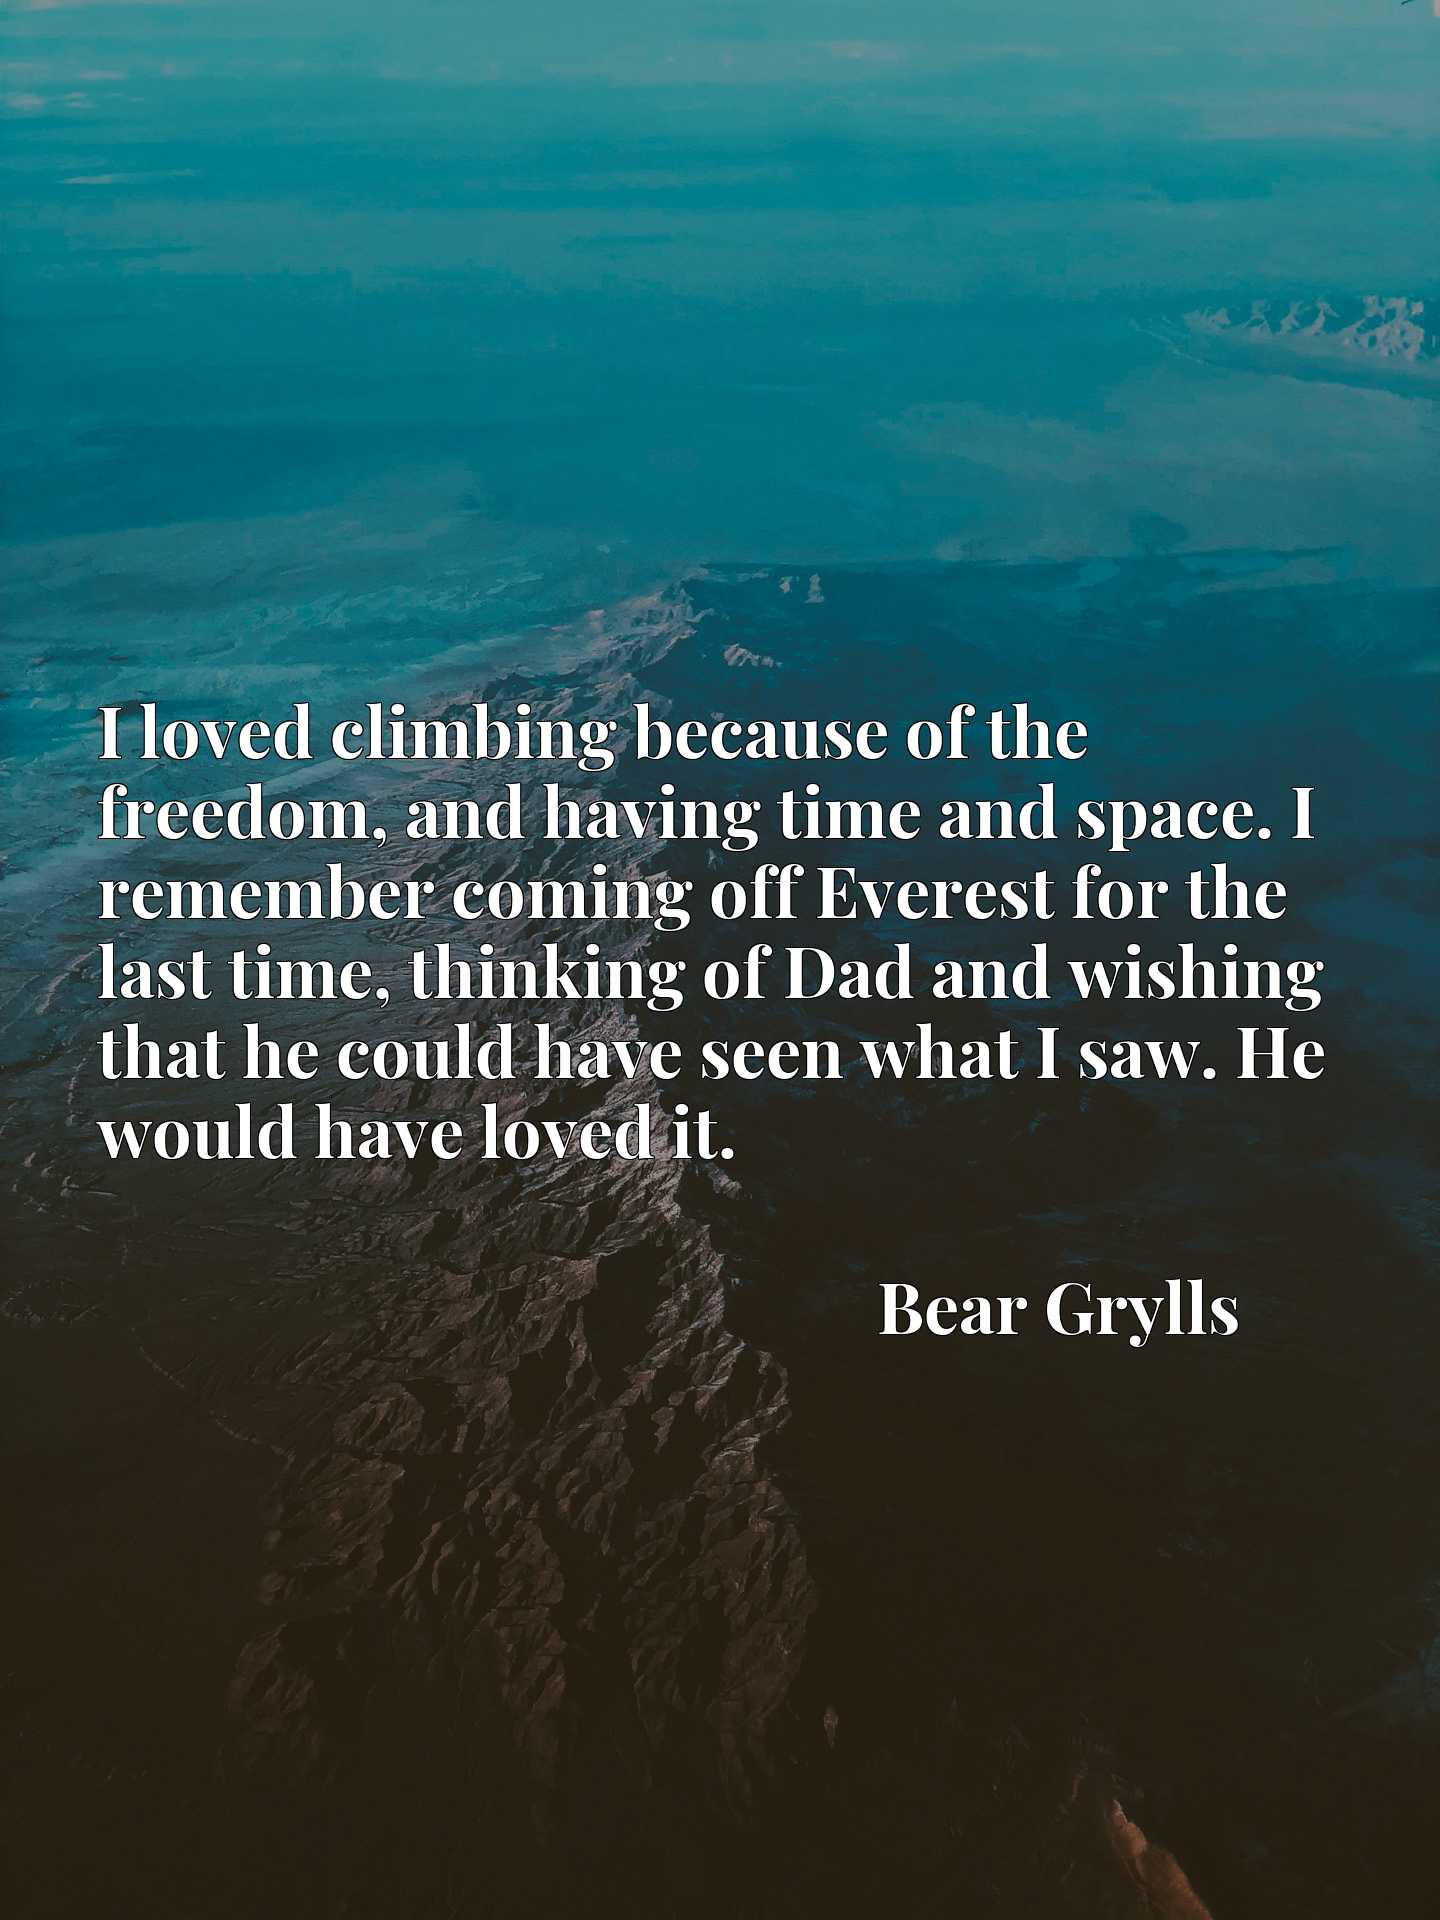 I loved climbing because of the freedom, and having time and space. I remember coming off Everest for the last time, thinking of Dad and wishing that he could have seen what I saw. He would have loved it.